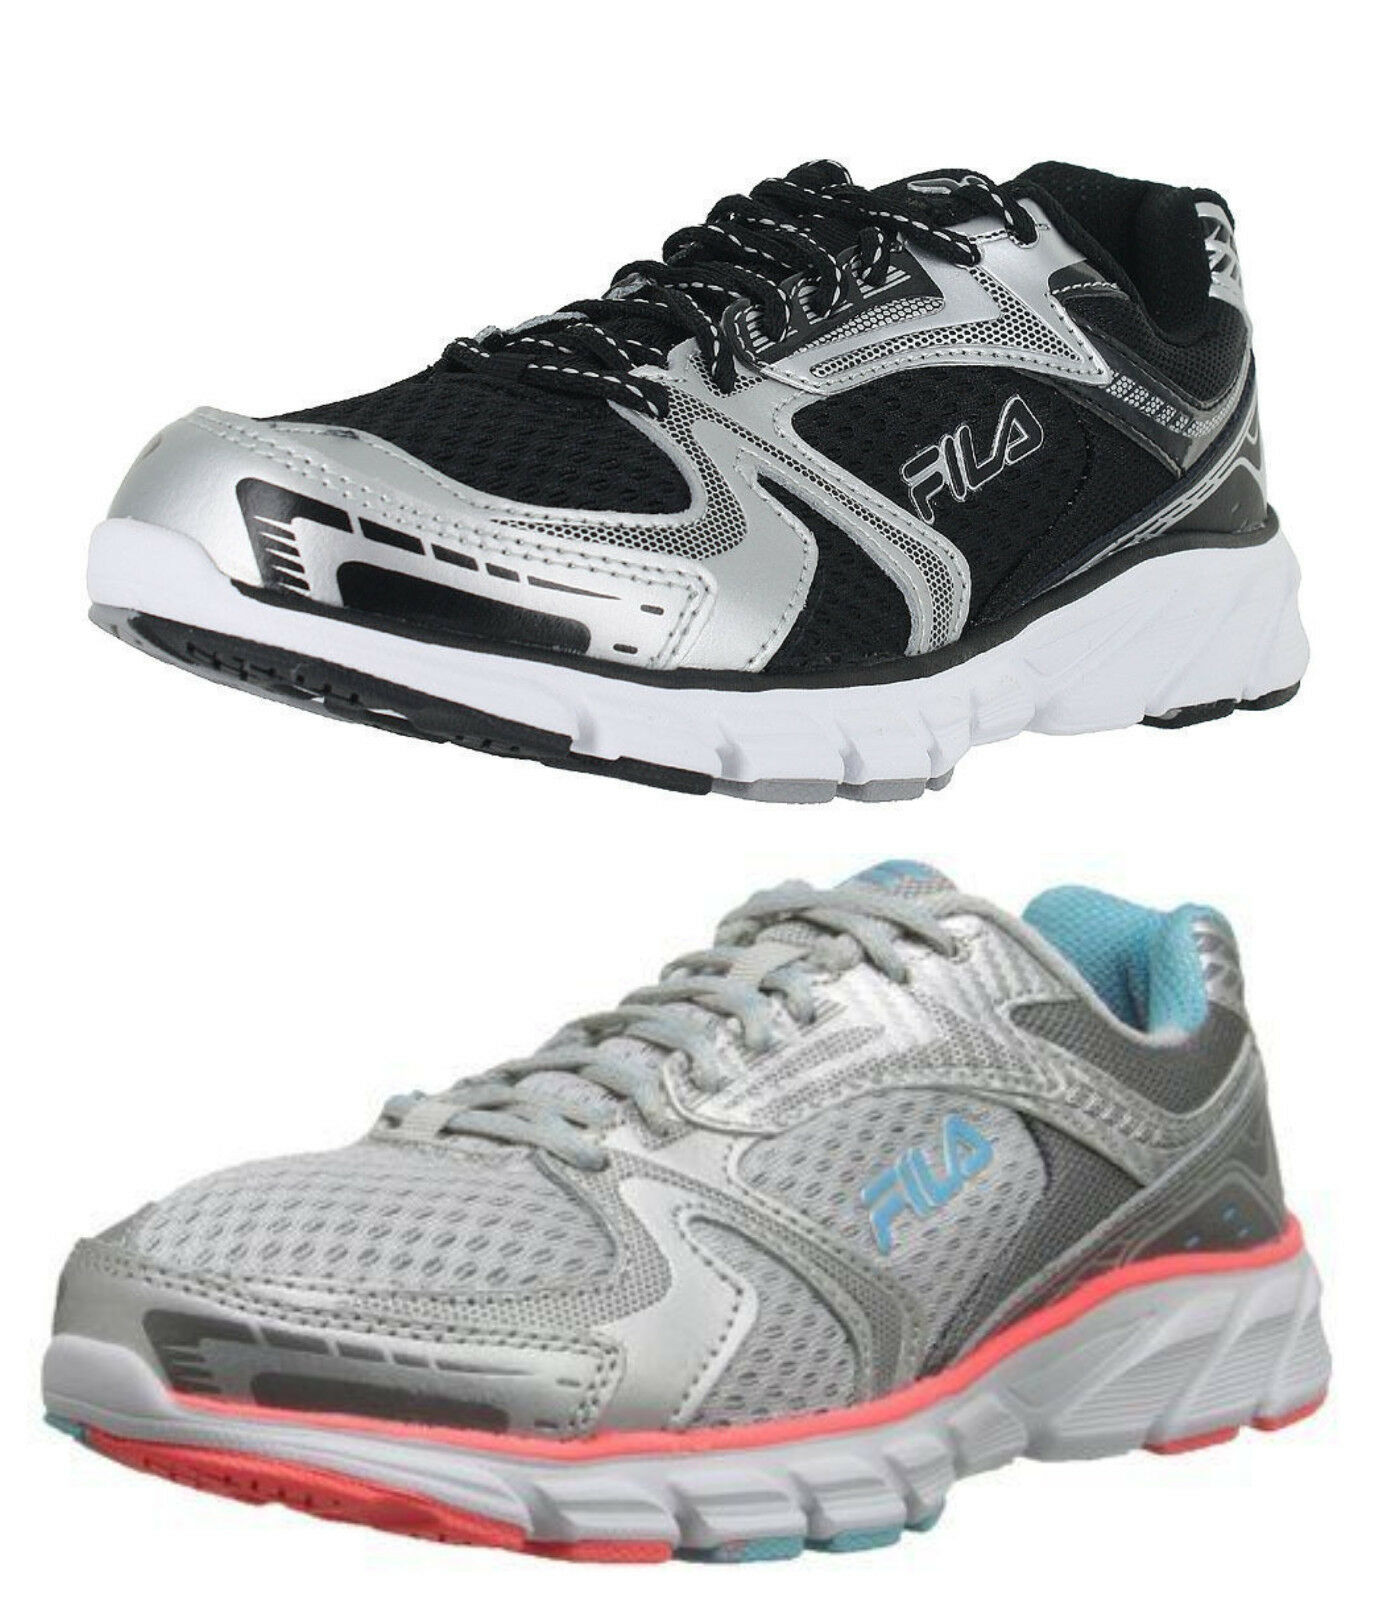 Fila Approach Women's Athletic Running Shoes Sneakers Leather/Synthetic 5SR20587